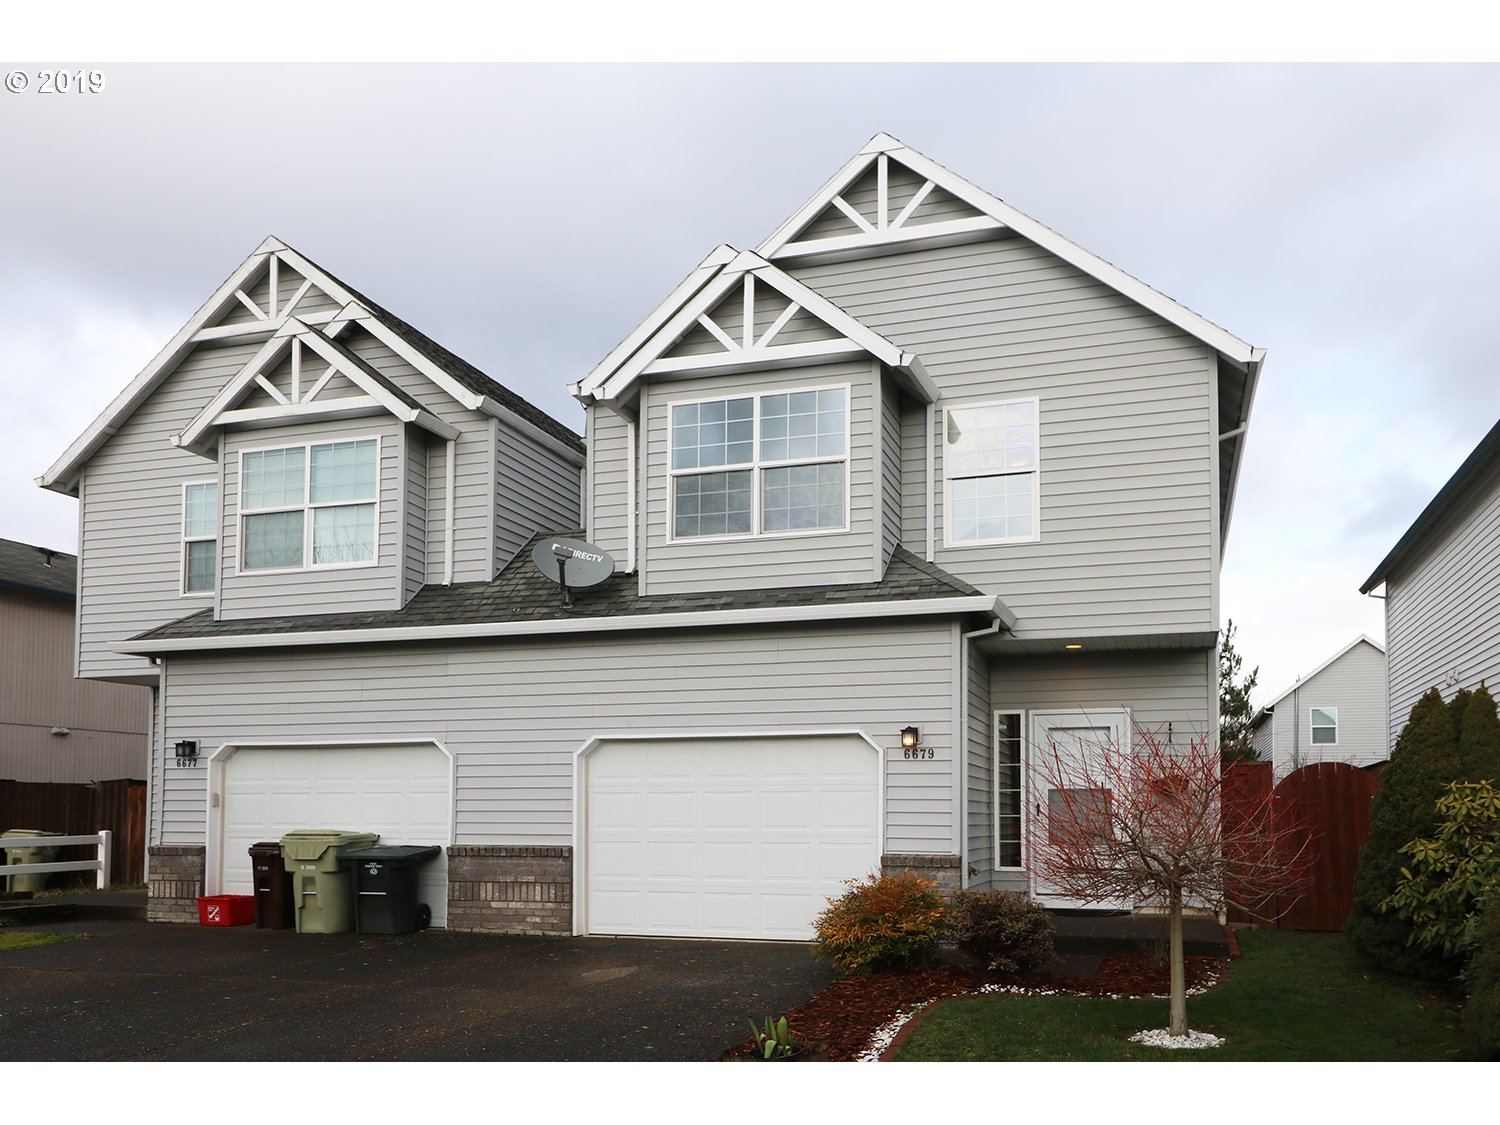 Hillsboro Real Estate Homes For Sale | realtyonegroup com